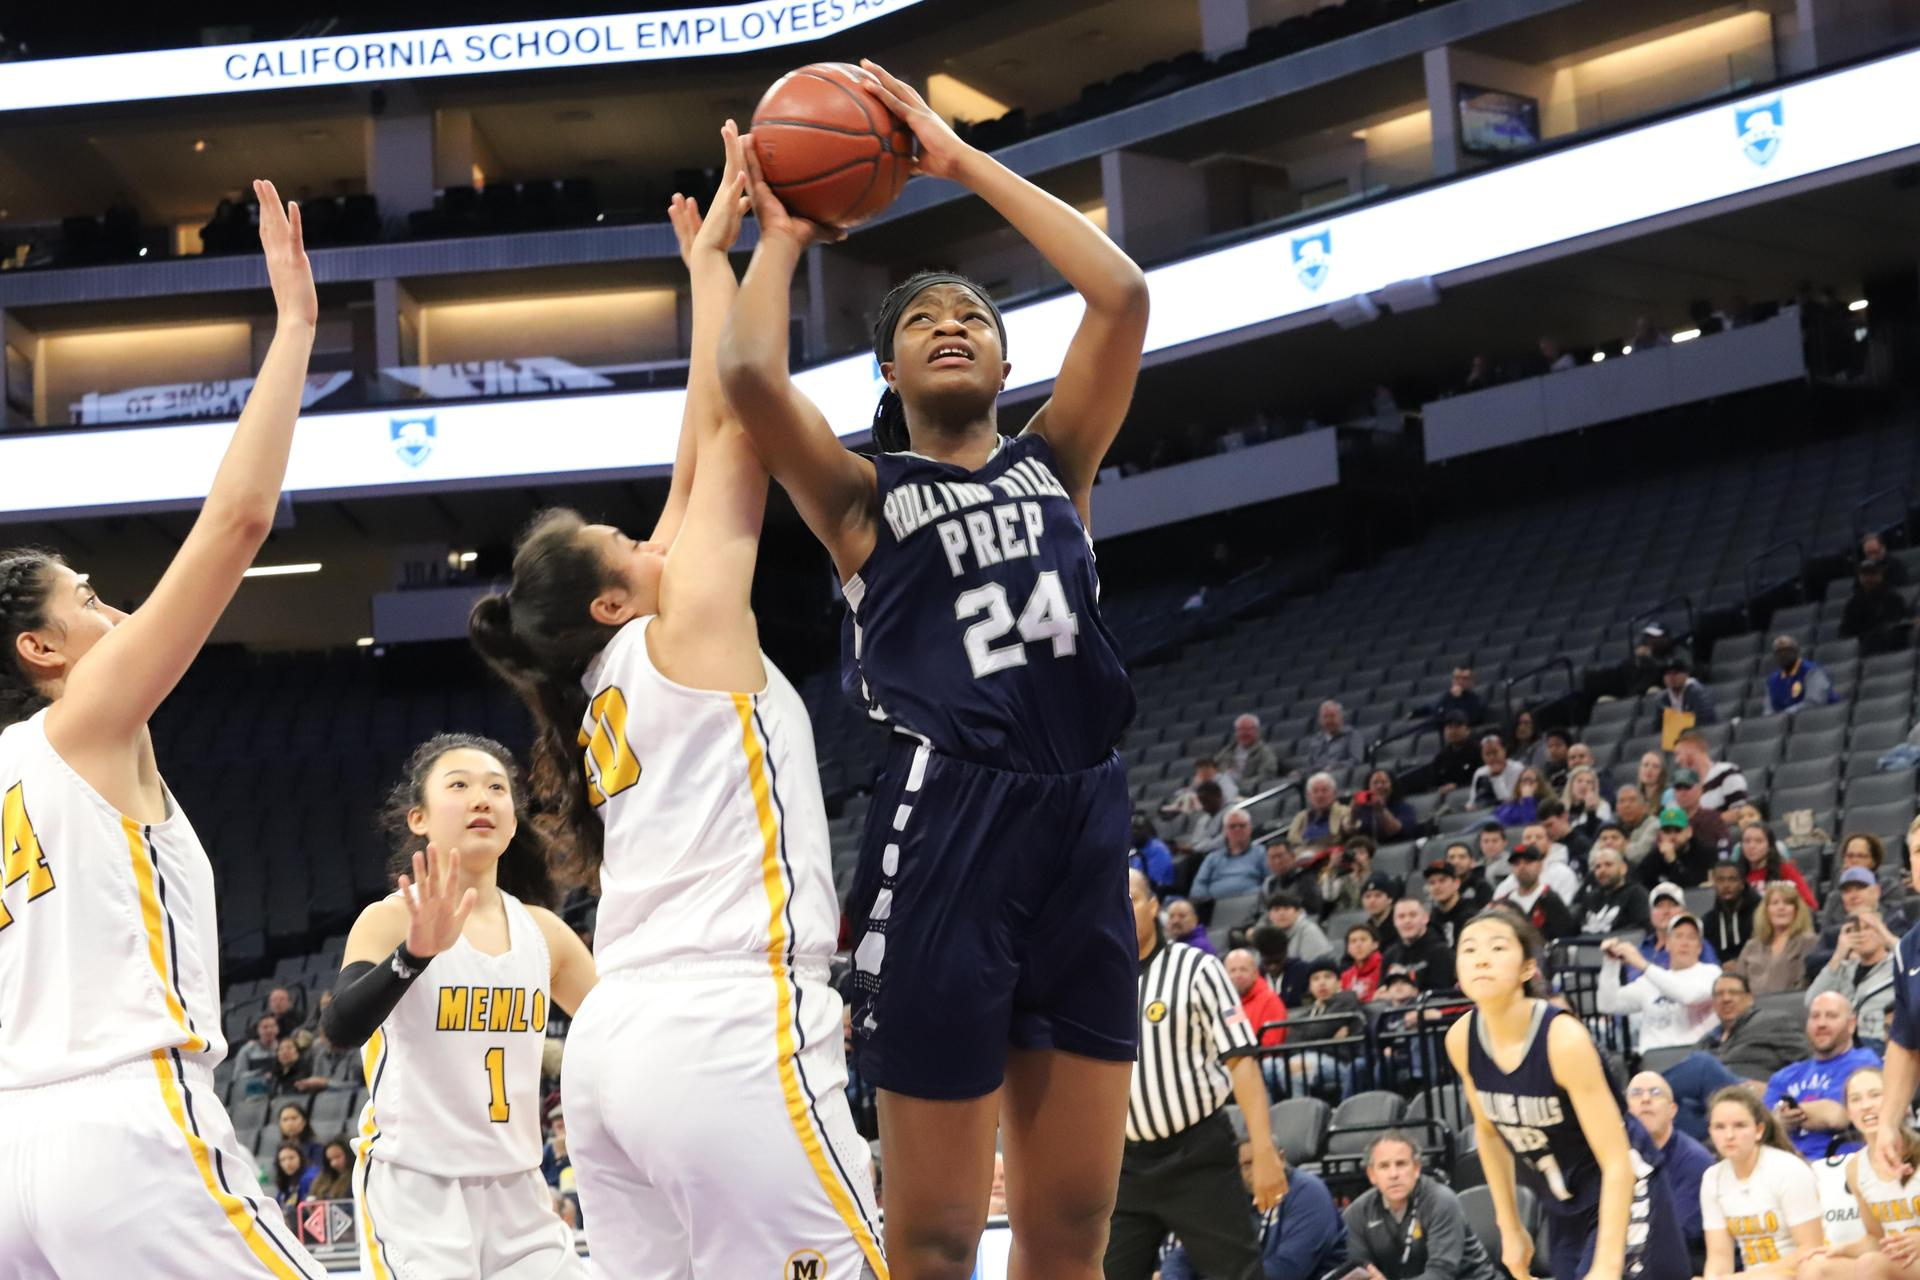 Varsity Girls' Basketball at the CIF State Finals